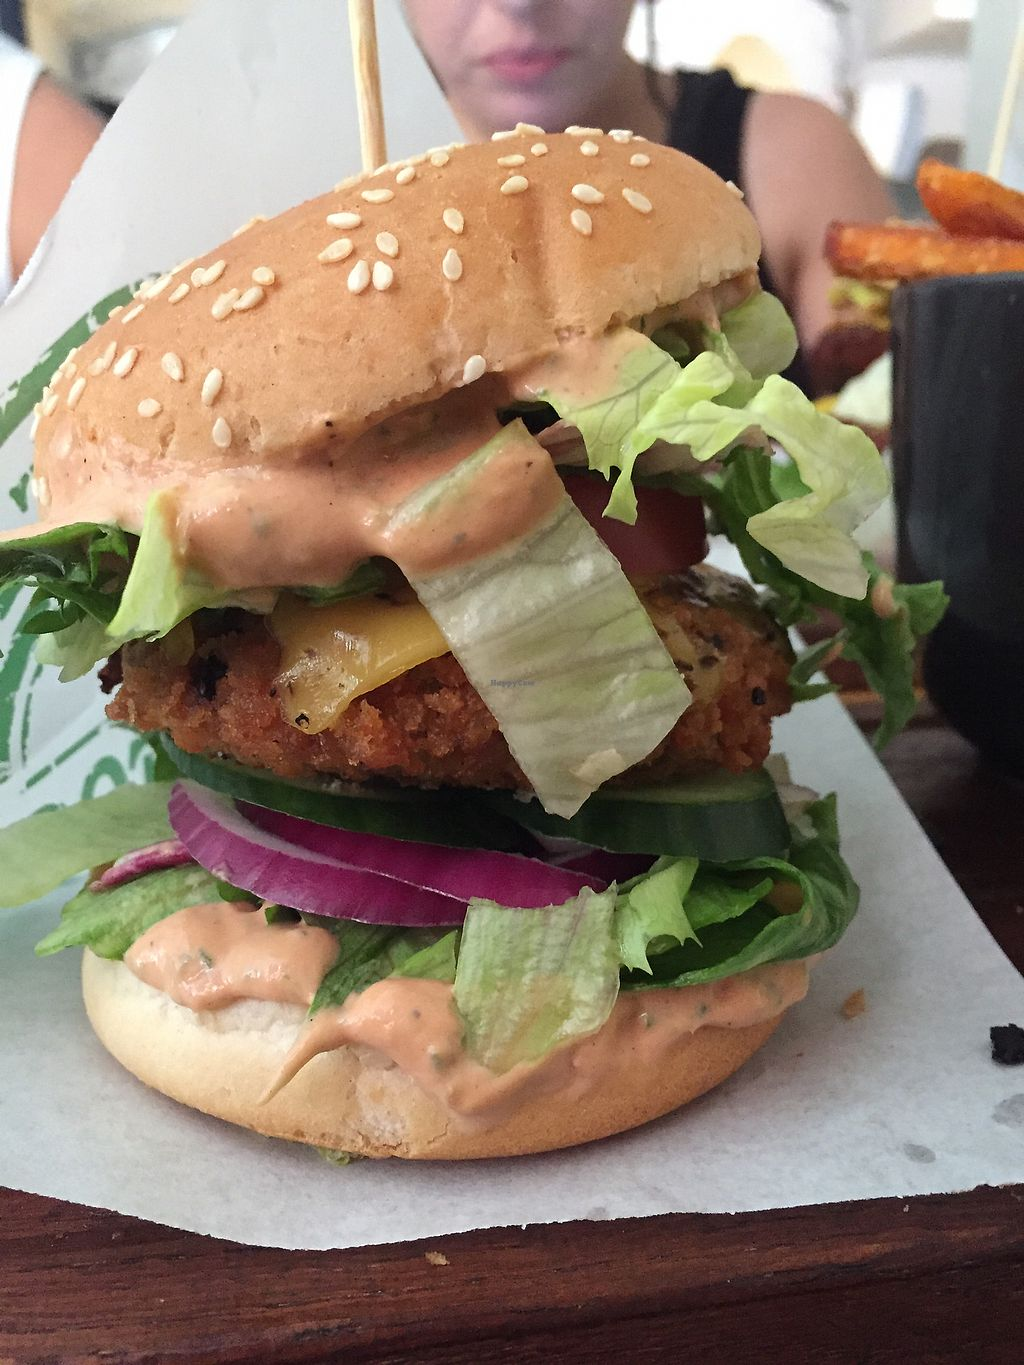 """Photo of Göteburgare Vegan  by <a href=""""/members/profile/Emmarooos"""">Emmarooos</a> <br/>Britt-Inger  <br/> August 7, 2017  - <a href='/contact/abuse/image/95219/290049'>Report</a>"""